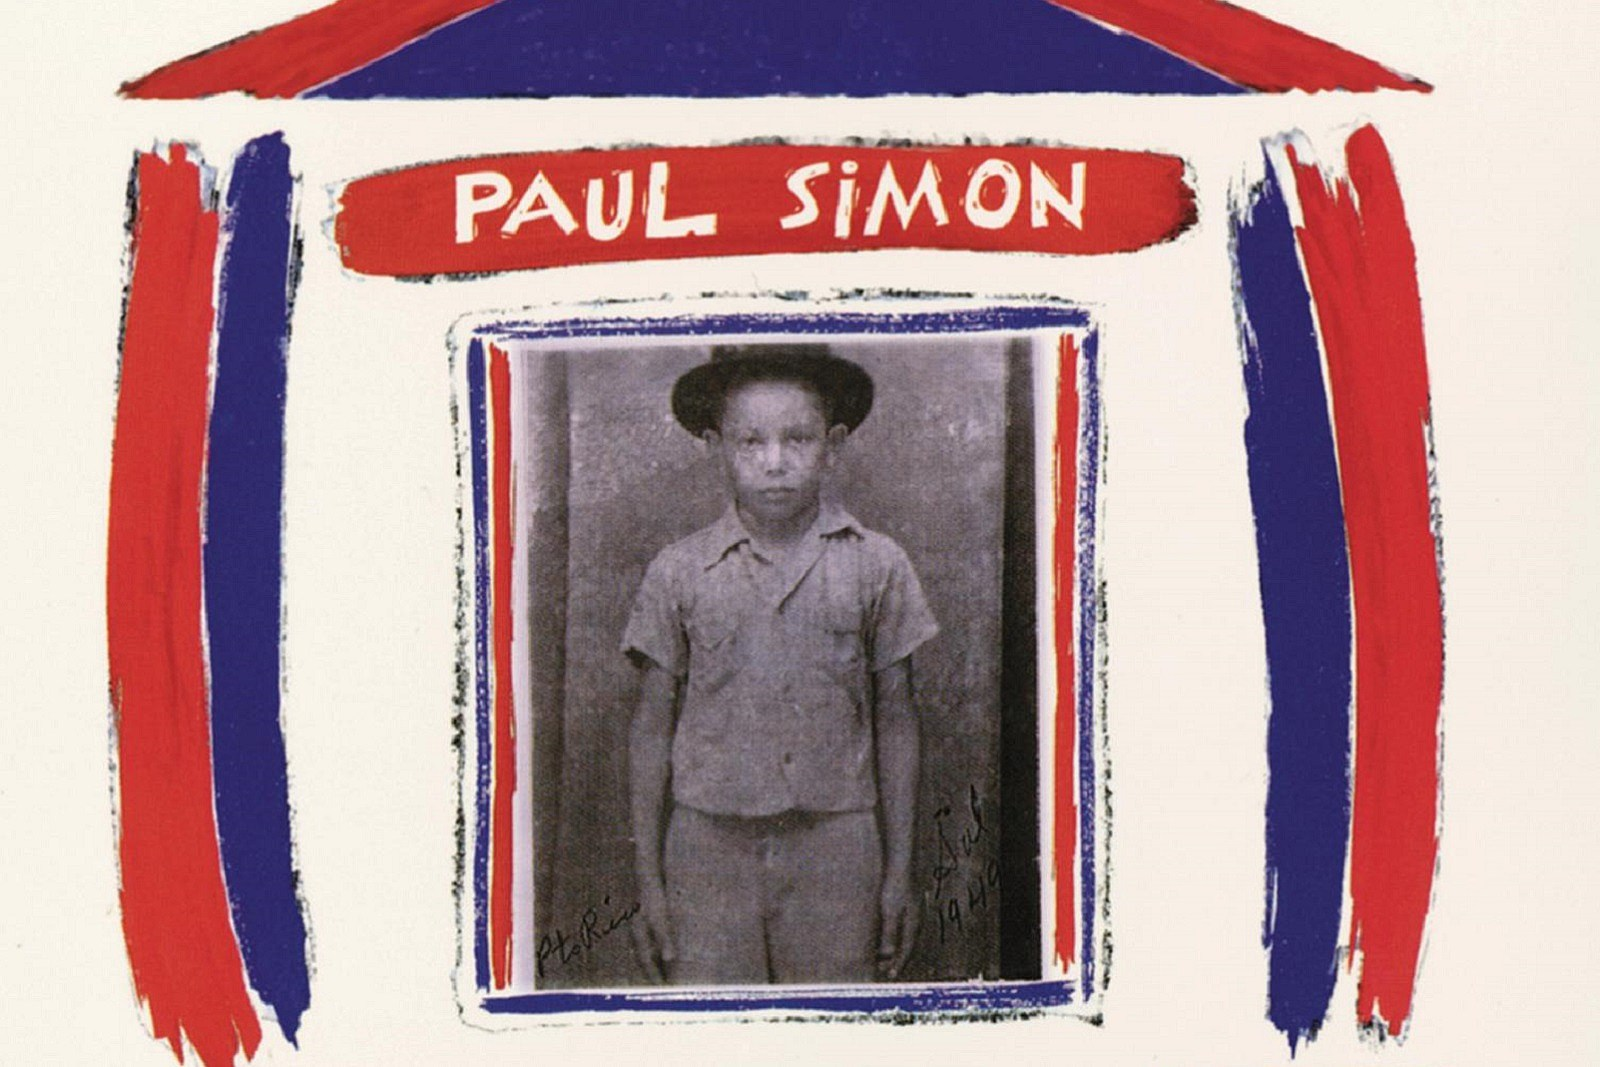 Why Paul Simon's 'Songs From the Capeman' Became Such a Failure